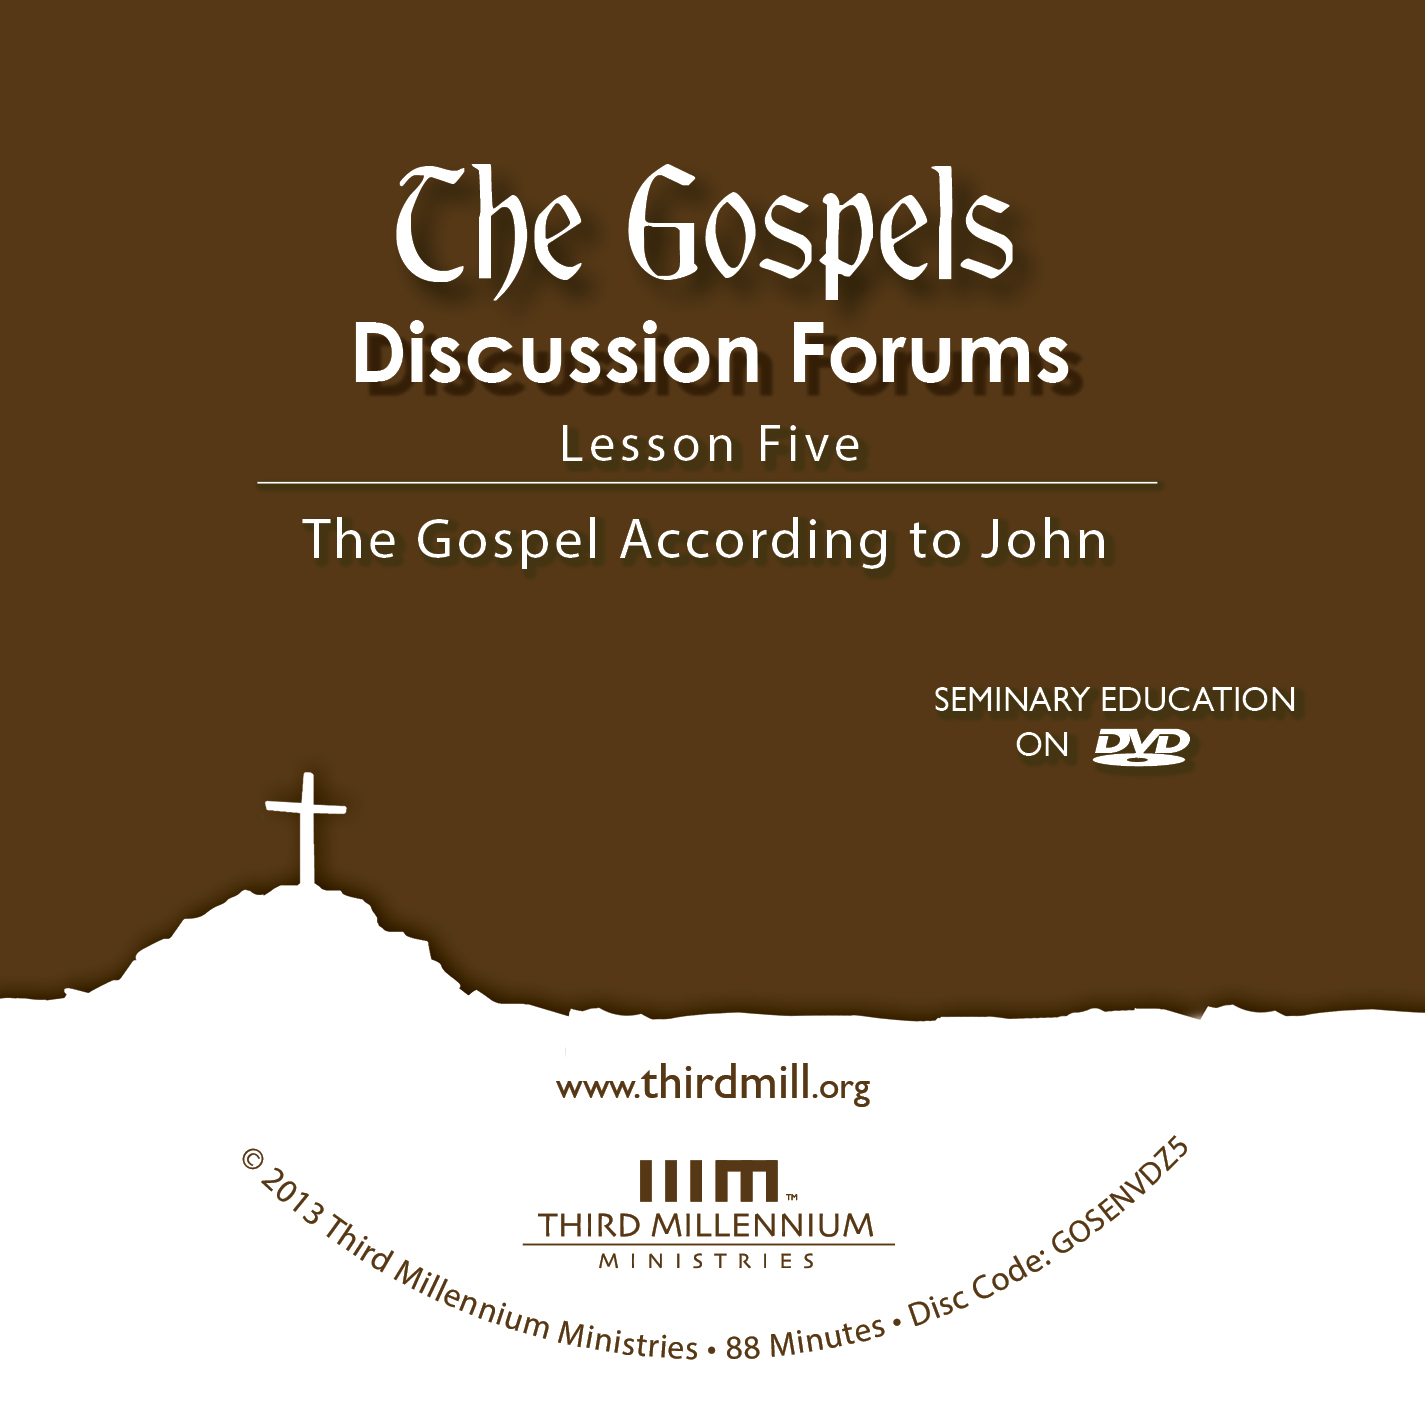 The gospels the gospel according to john medium definition audio extrasword table of contents pdf table of contents fandeluxe Images